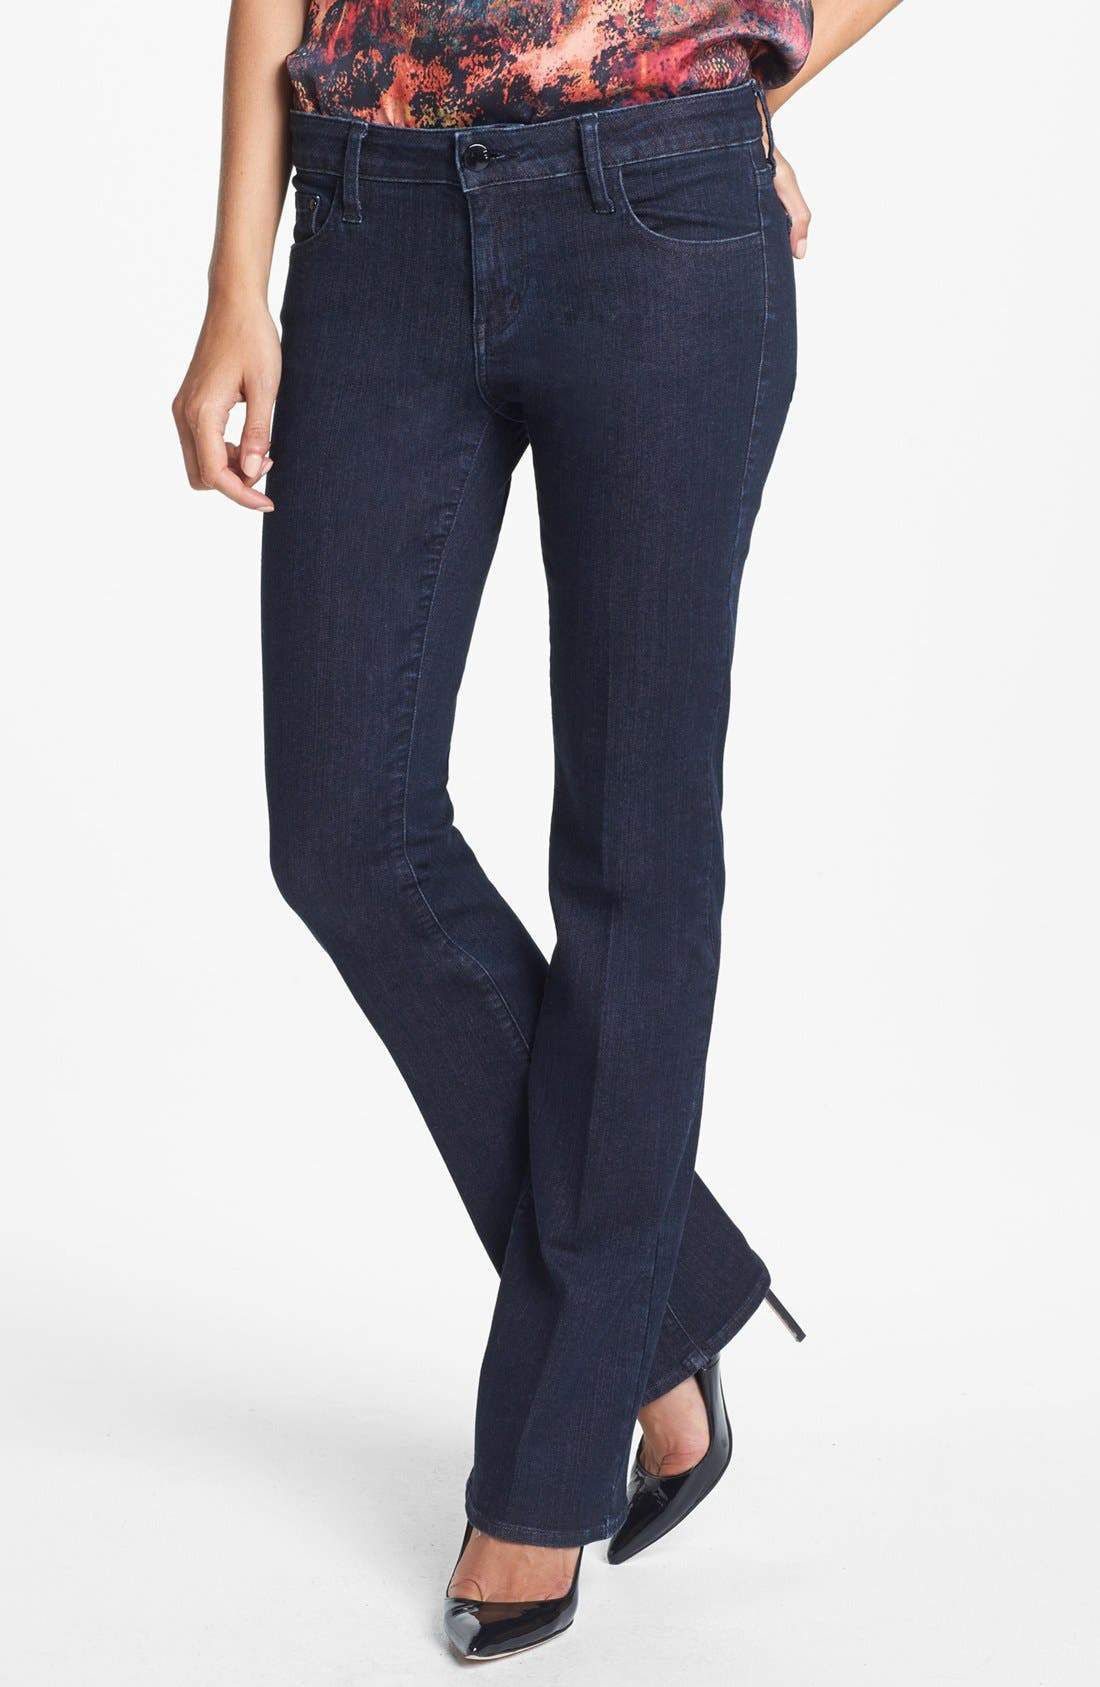 Alternate Image 1 Selected - !iT Collective 'Jolie' Slim Bootcut Jeans (A Star Is Born)